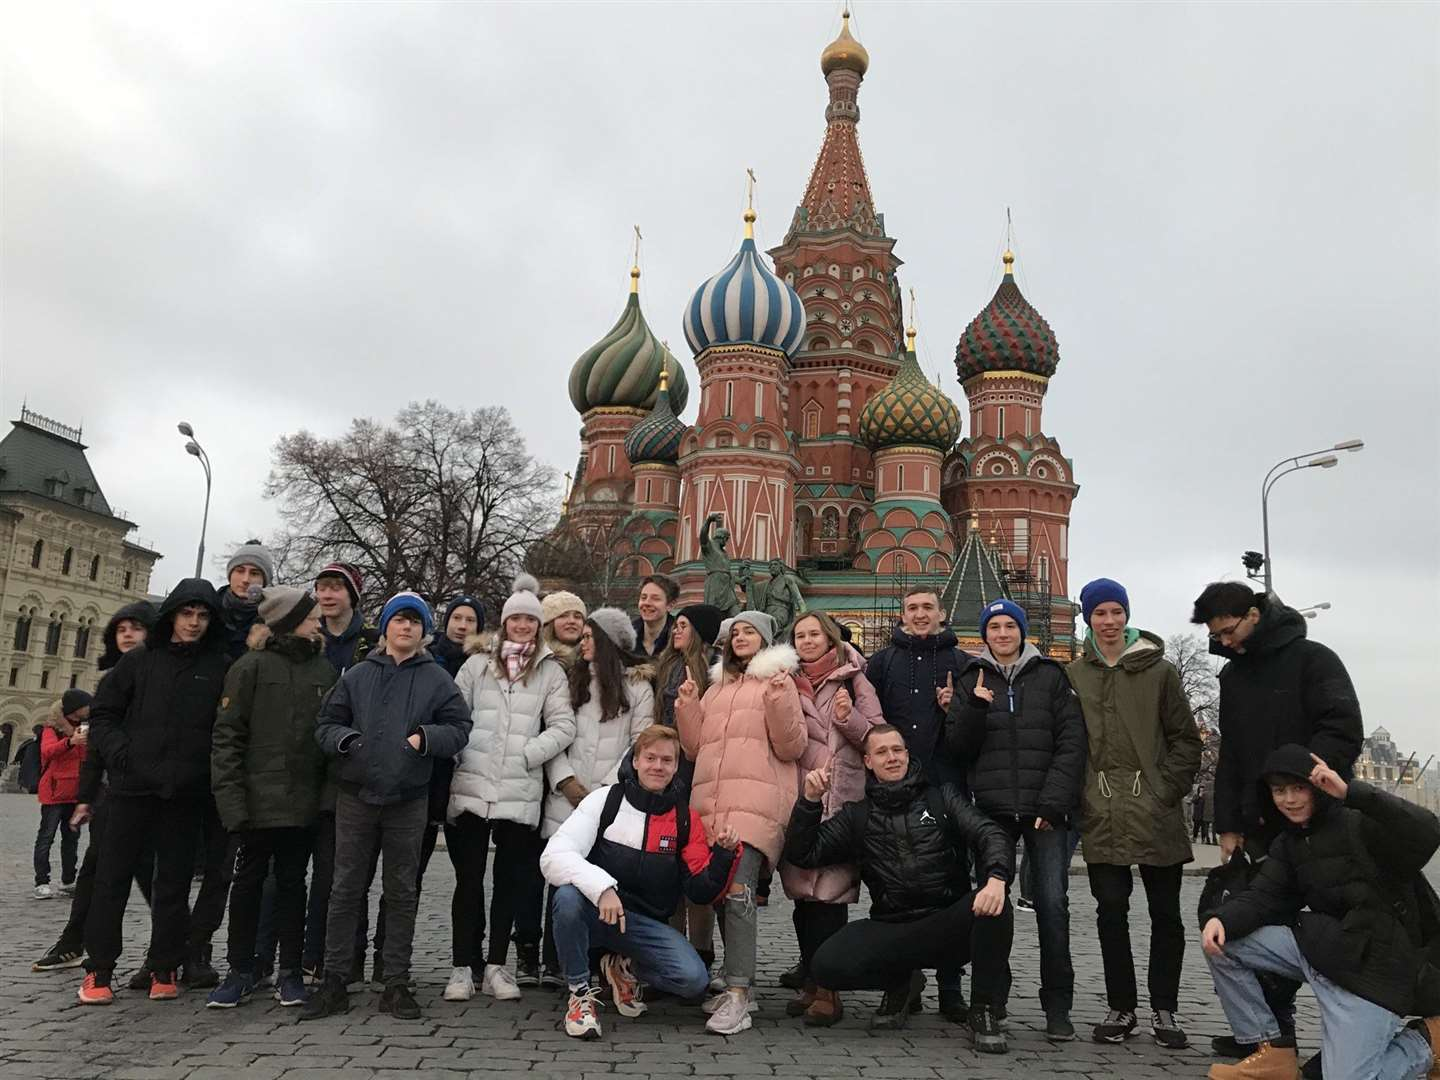 The pupils in Red Square, in front of St Basil's Cathedral, Moscow